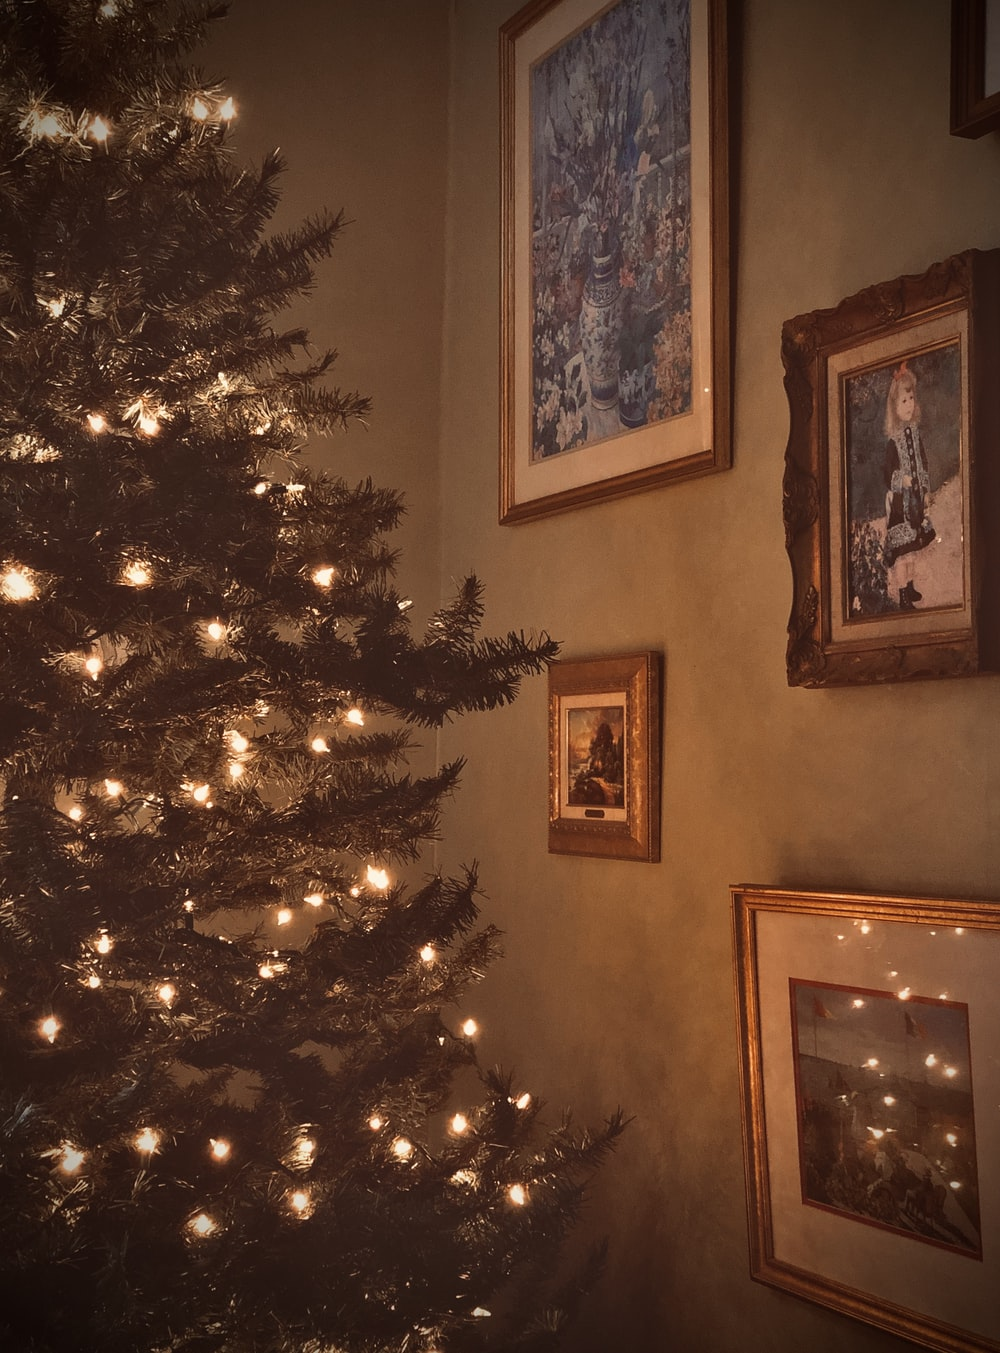 Christmas tree with turned on mini string lights near wall of pictures